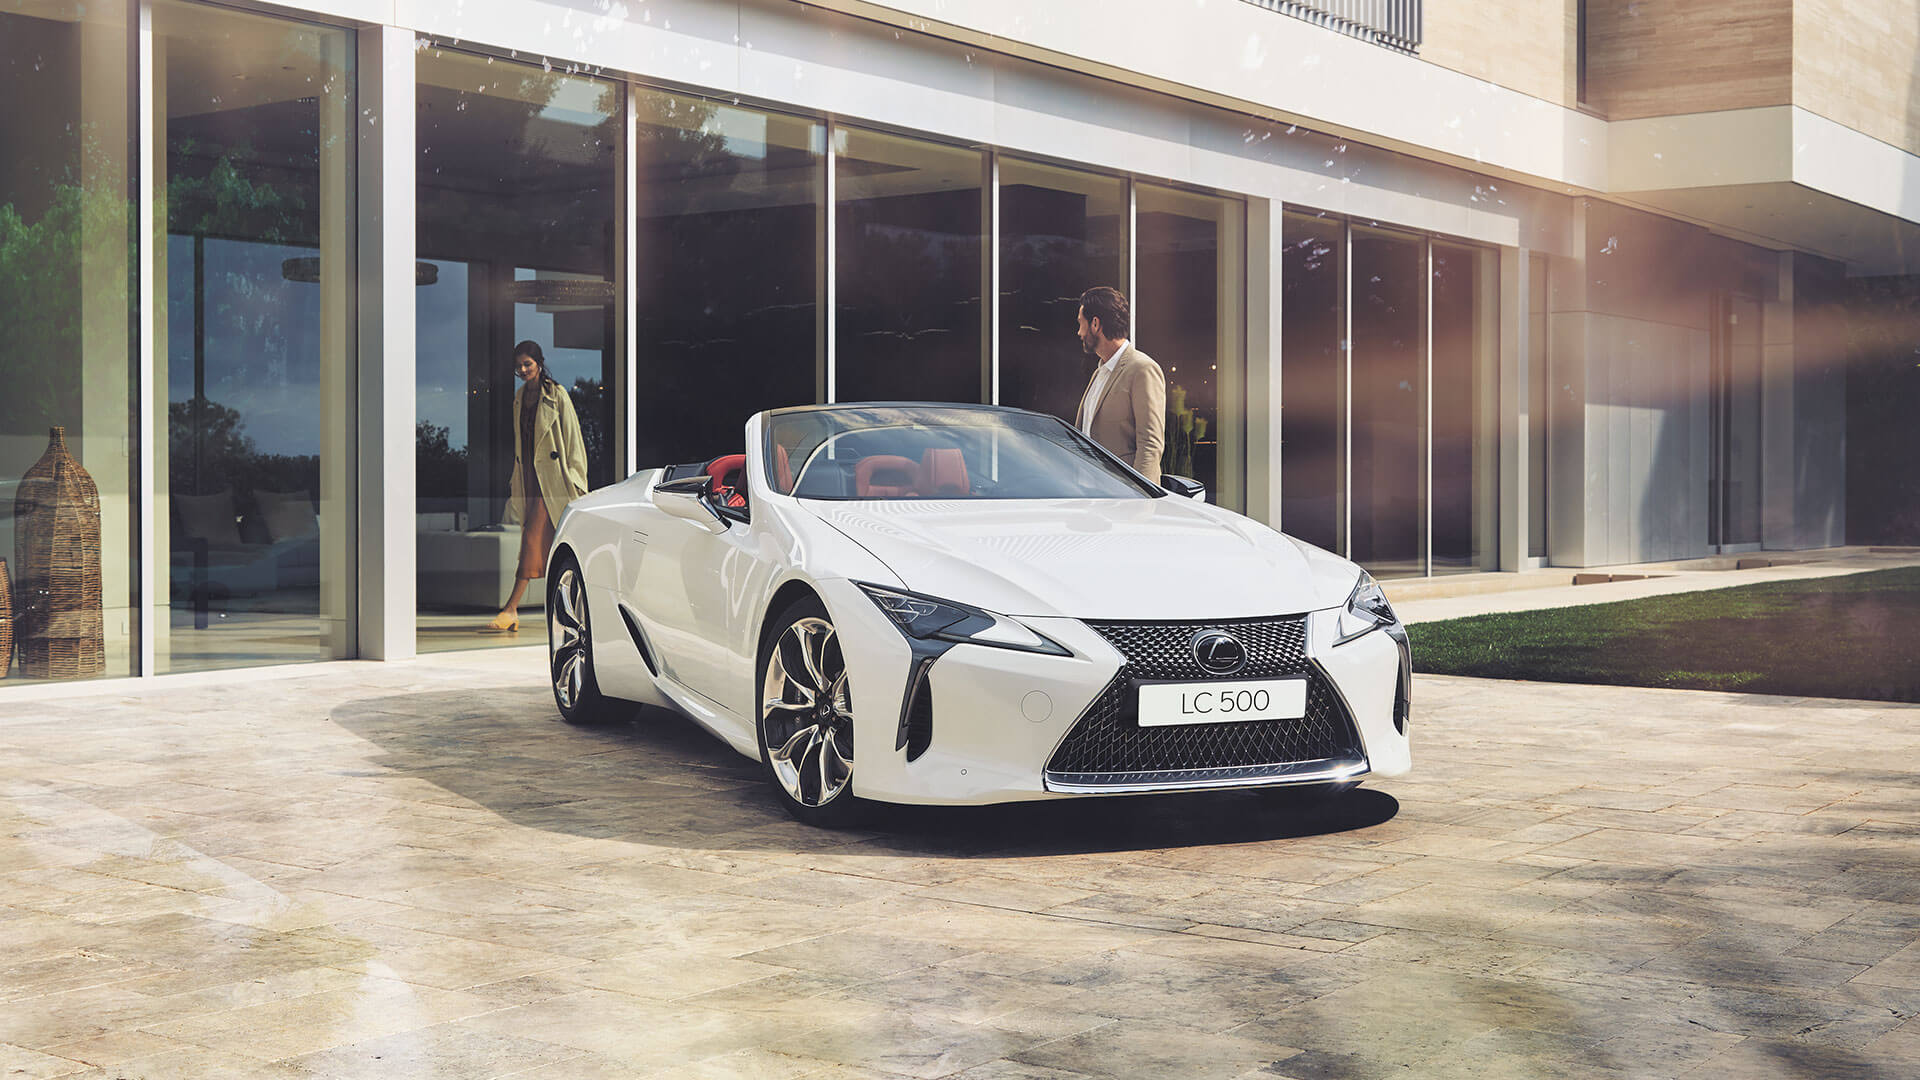 2020 lc convertible gallery 03